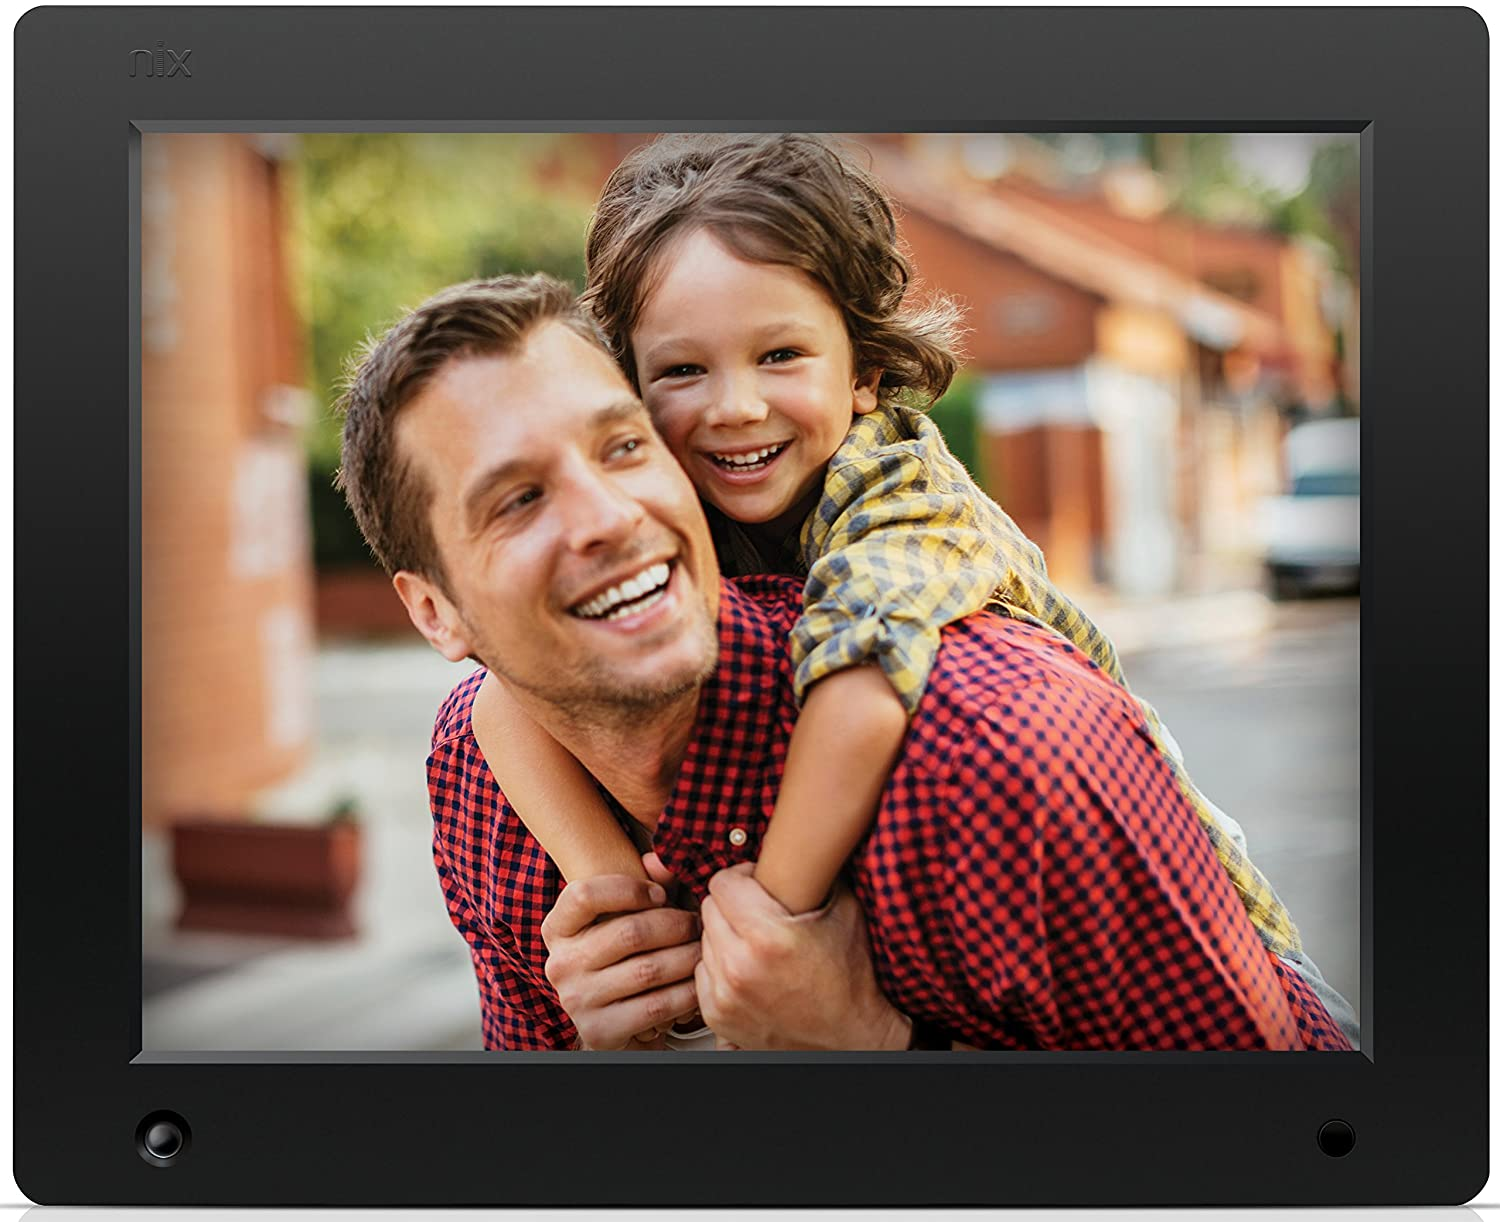 amazoncom nix 12 inch hi res digital photo frame with motion sensor 4gb memory x12c digital picture frames camera photo